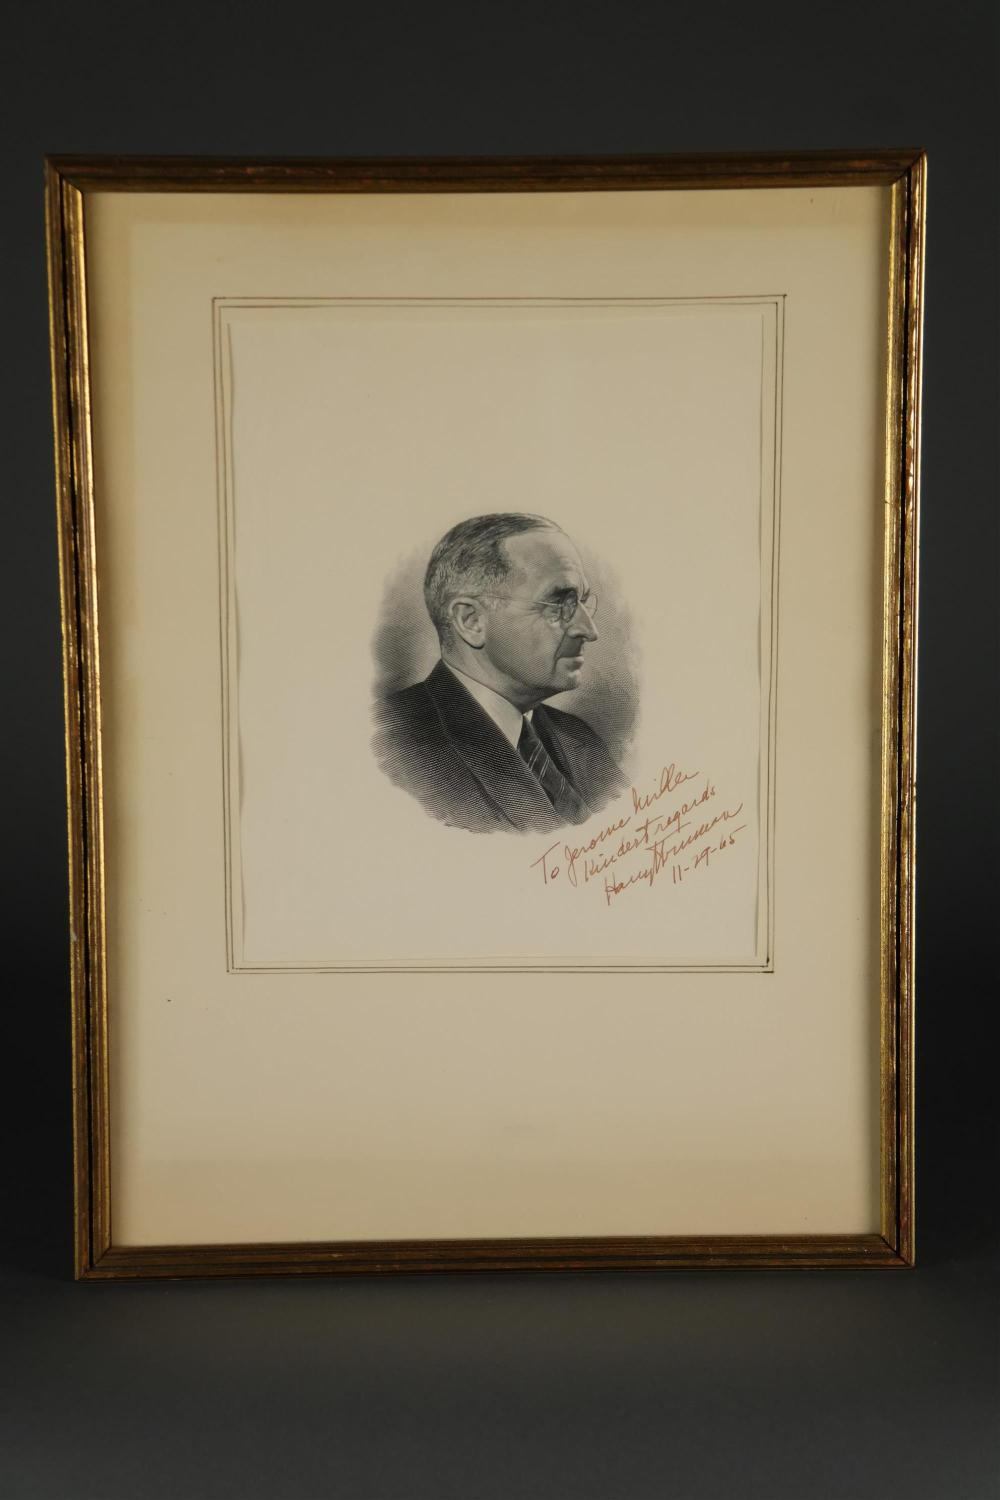 Lot 127: Harry Truman. Portrait, Inscribed and Signed.